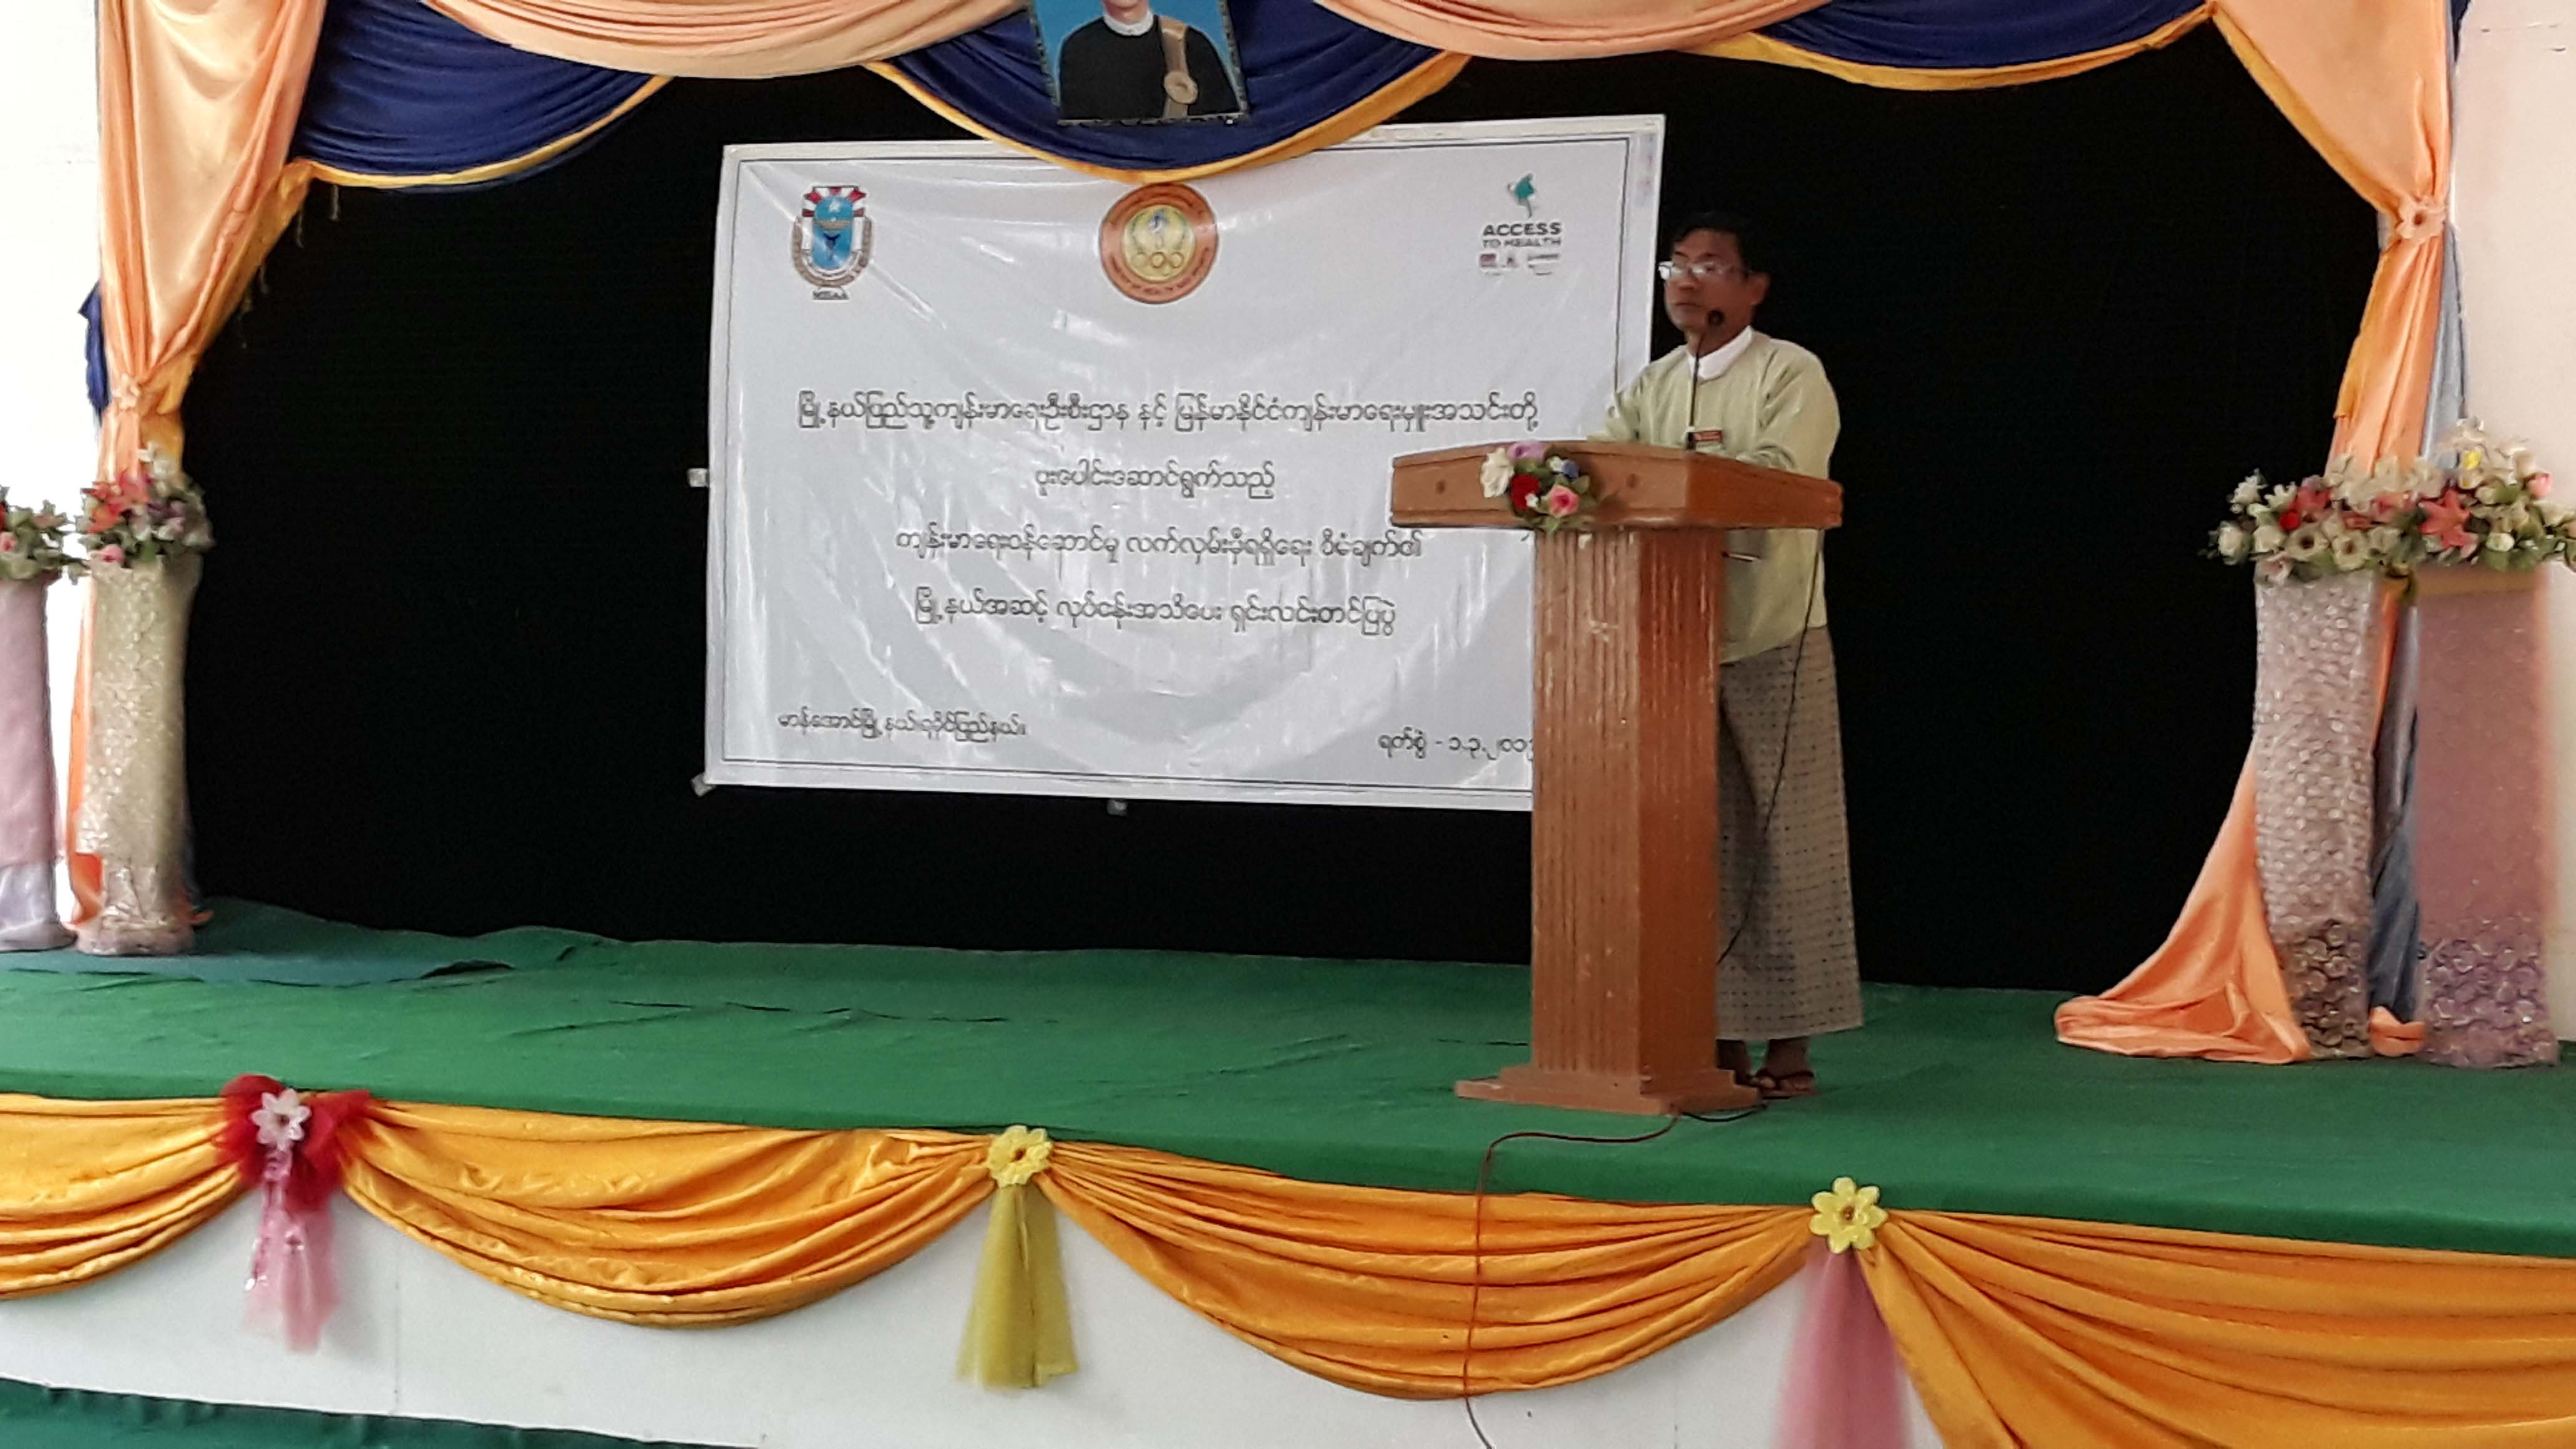 Opening Speech by General Administration Officer